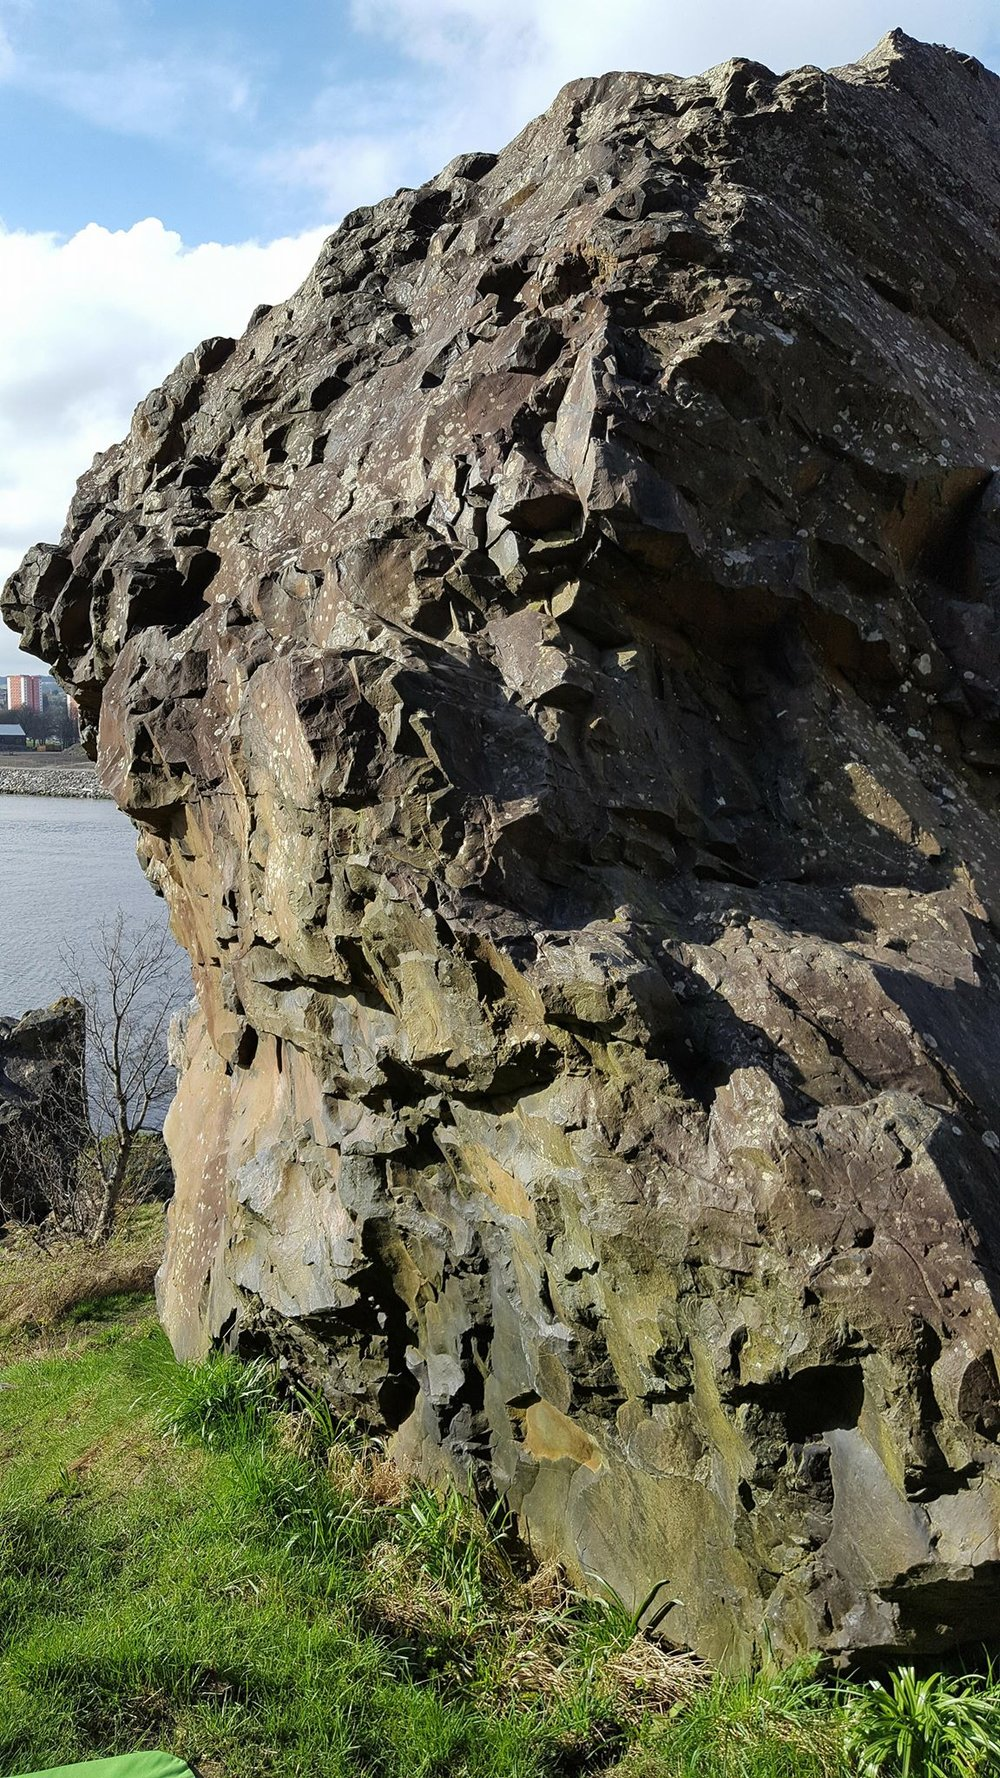 Great day for outdoor climbing at Dumbarton Rock. Photo by 2181 at IG: jai.lapeche